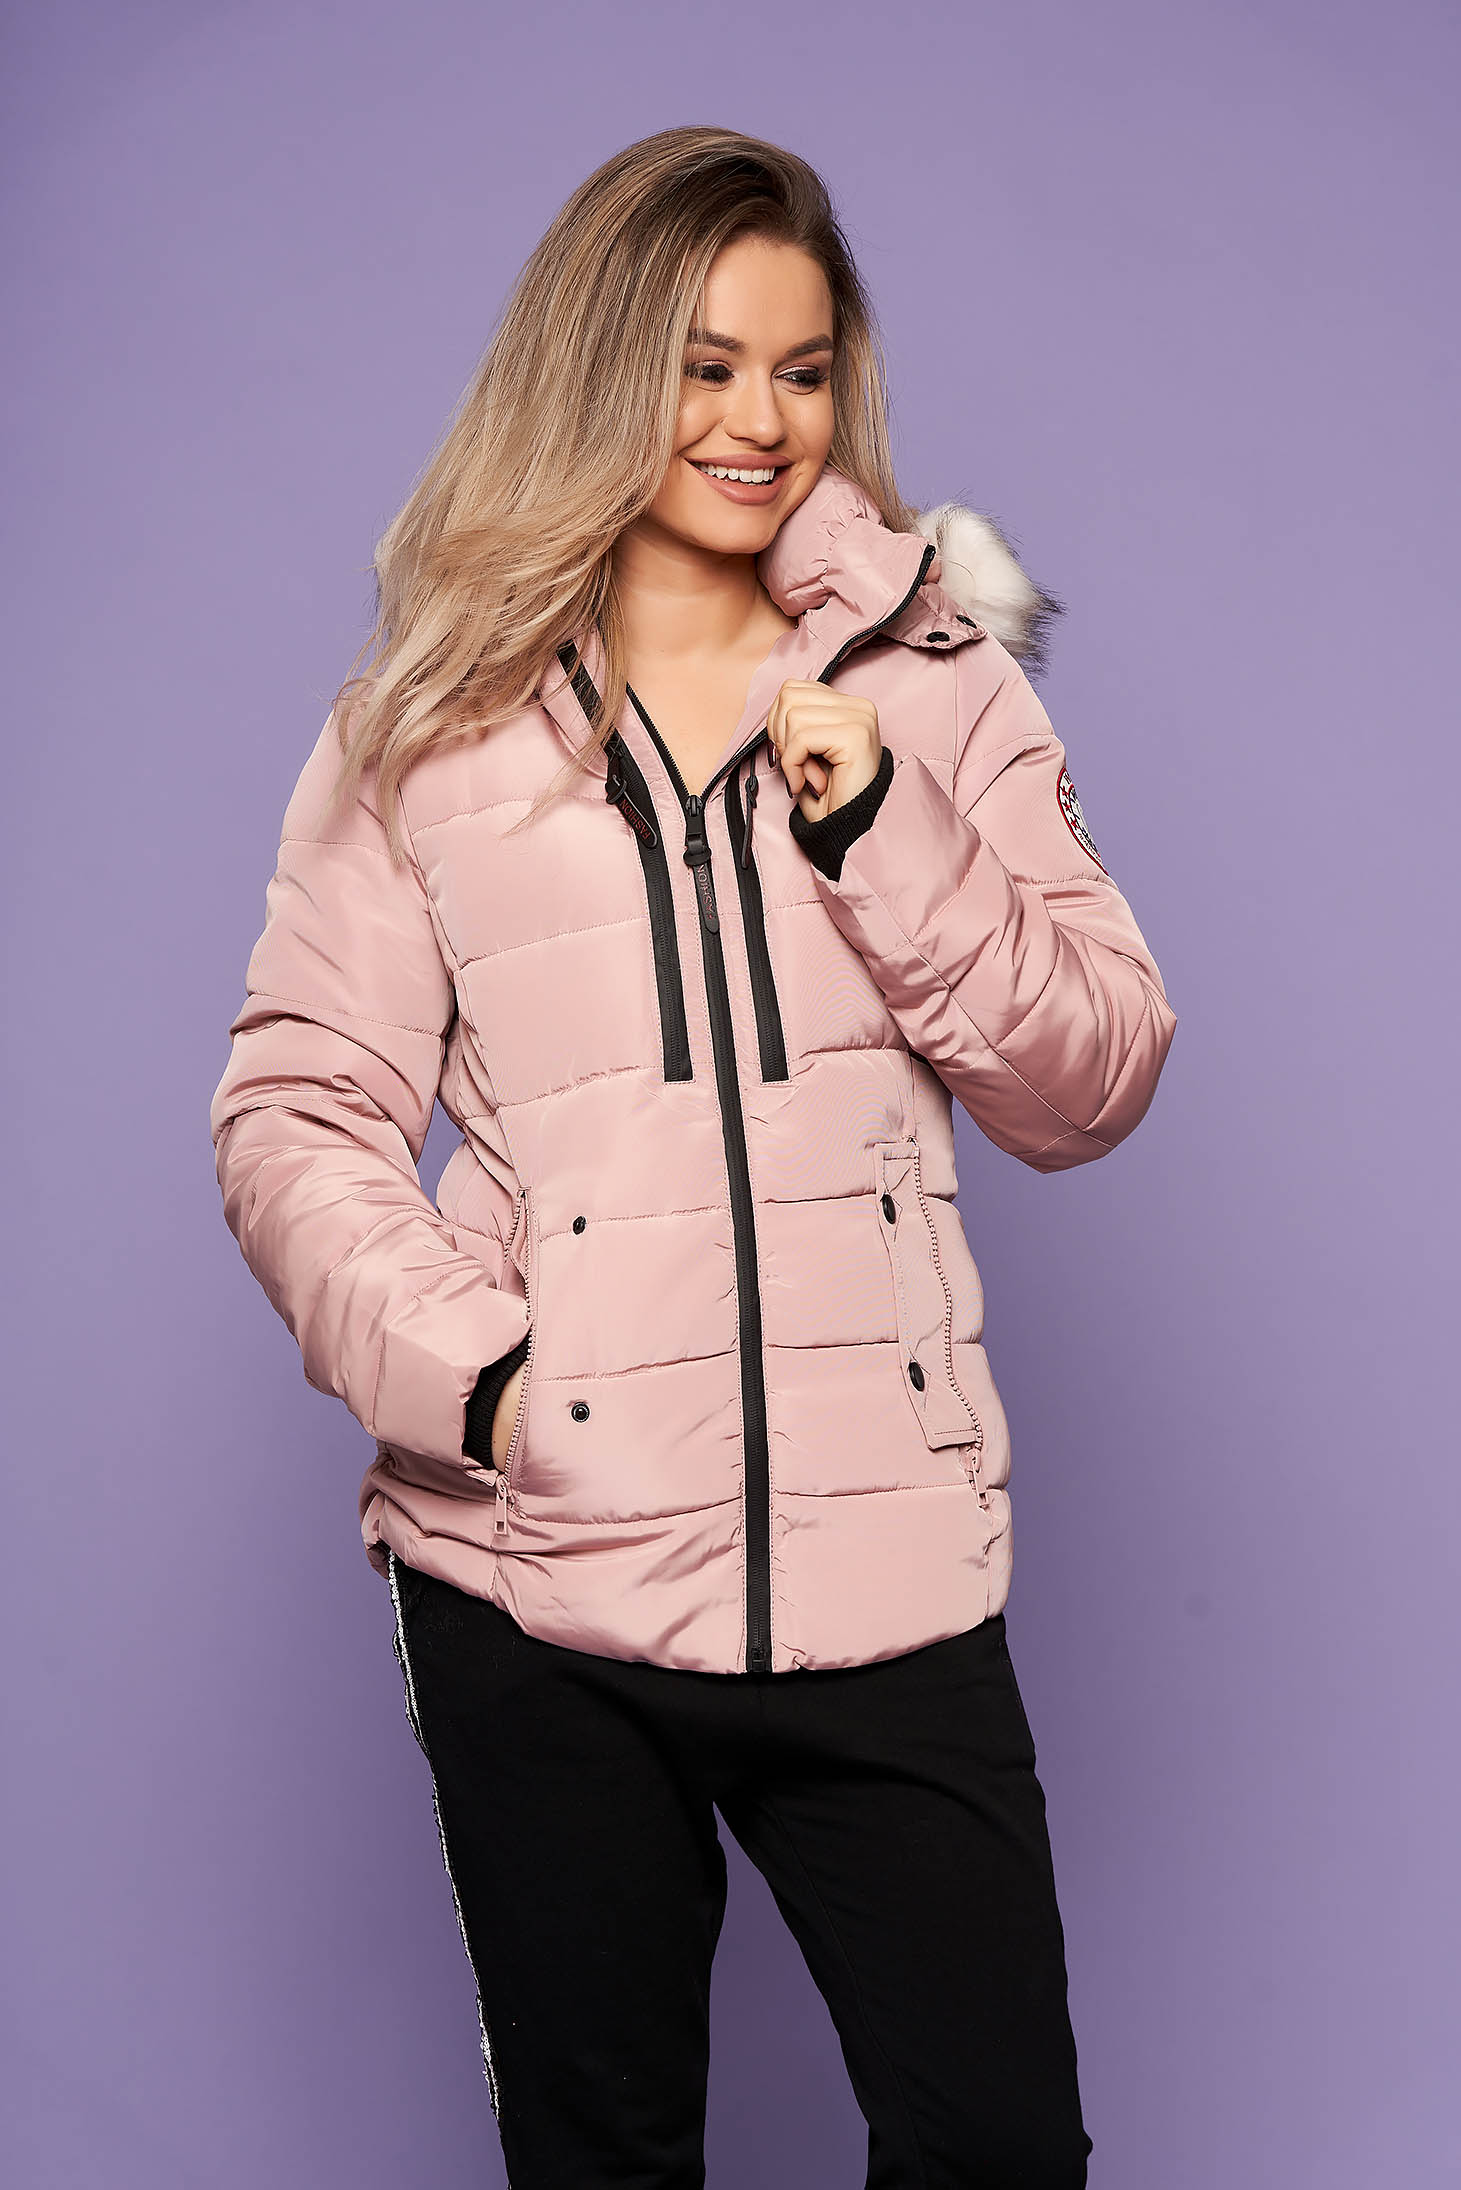 Lightpink jacket casual short cut with pockets long sleeved with furry hood